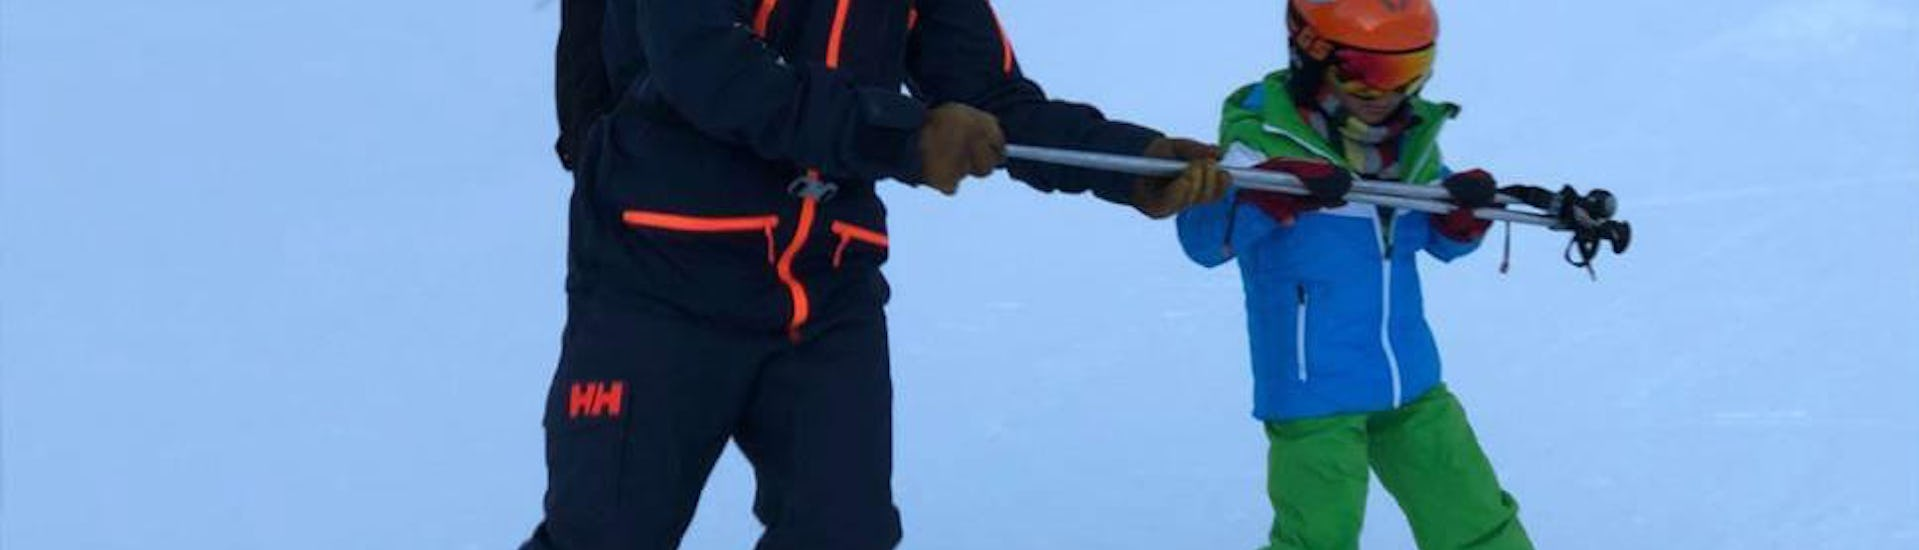 Ski instructor shows the child how to hold the ski sticks correctly during Private Ski Lessons for Kids - Megève - All Ages with the ski school Skibex.